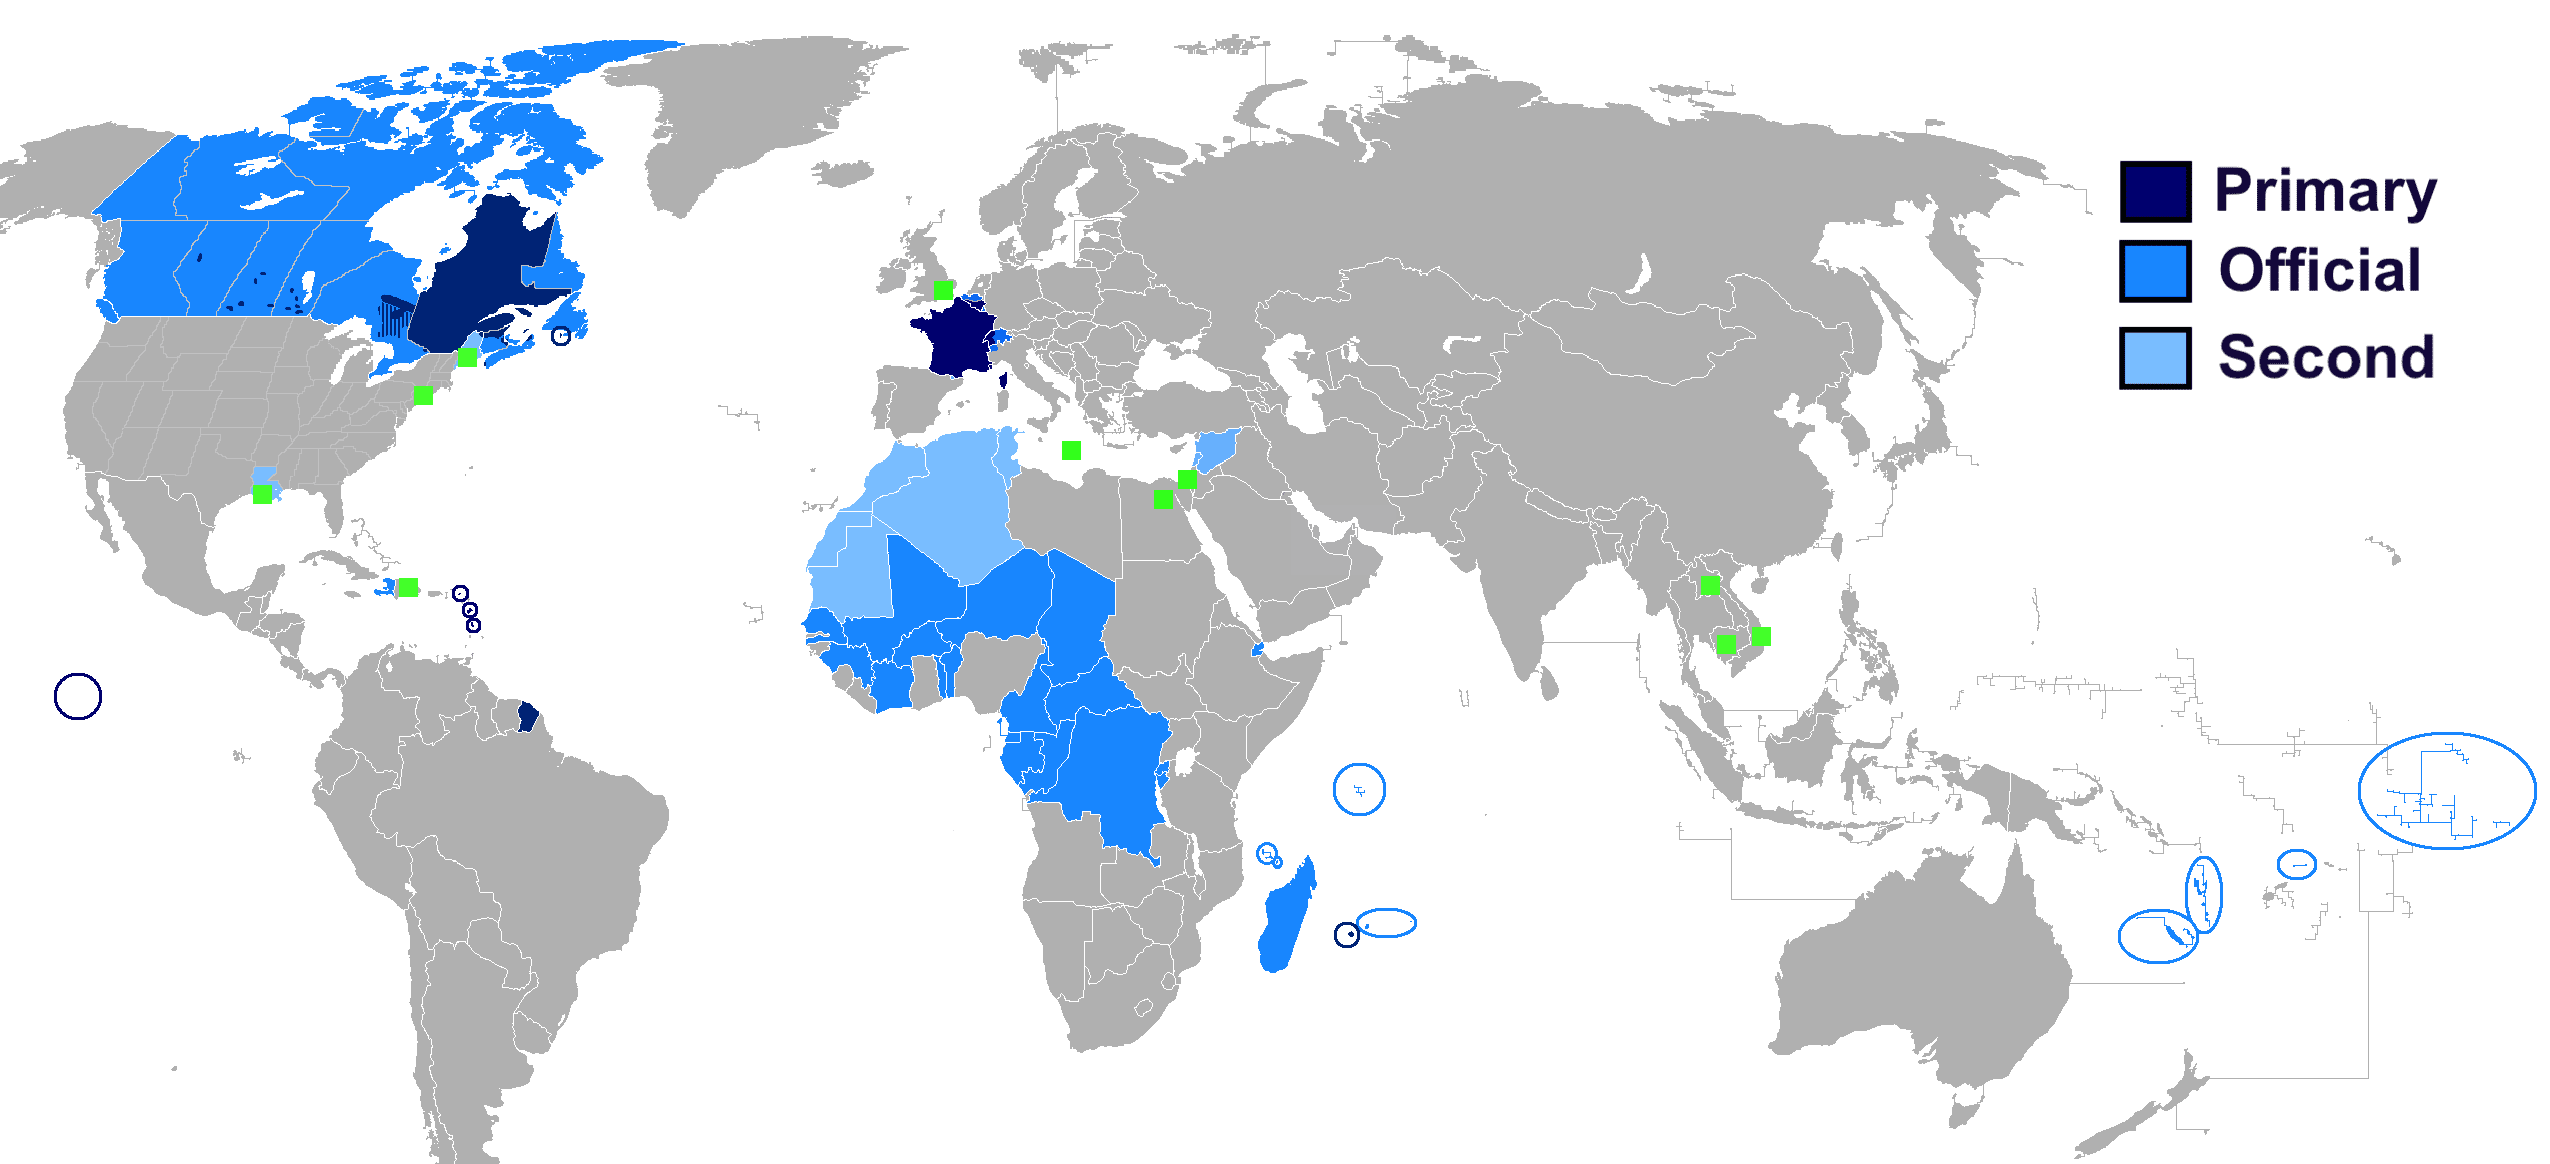 Map of French-speaking countries in the world